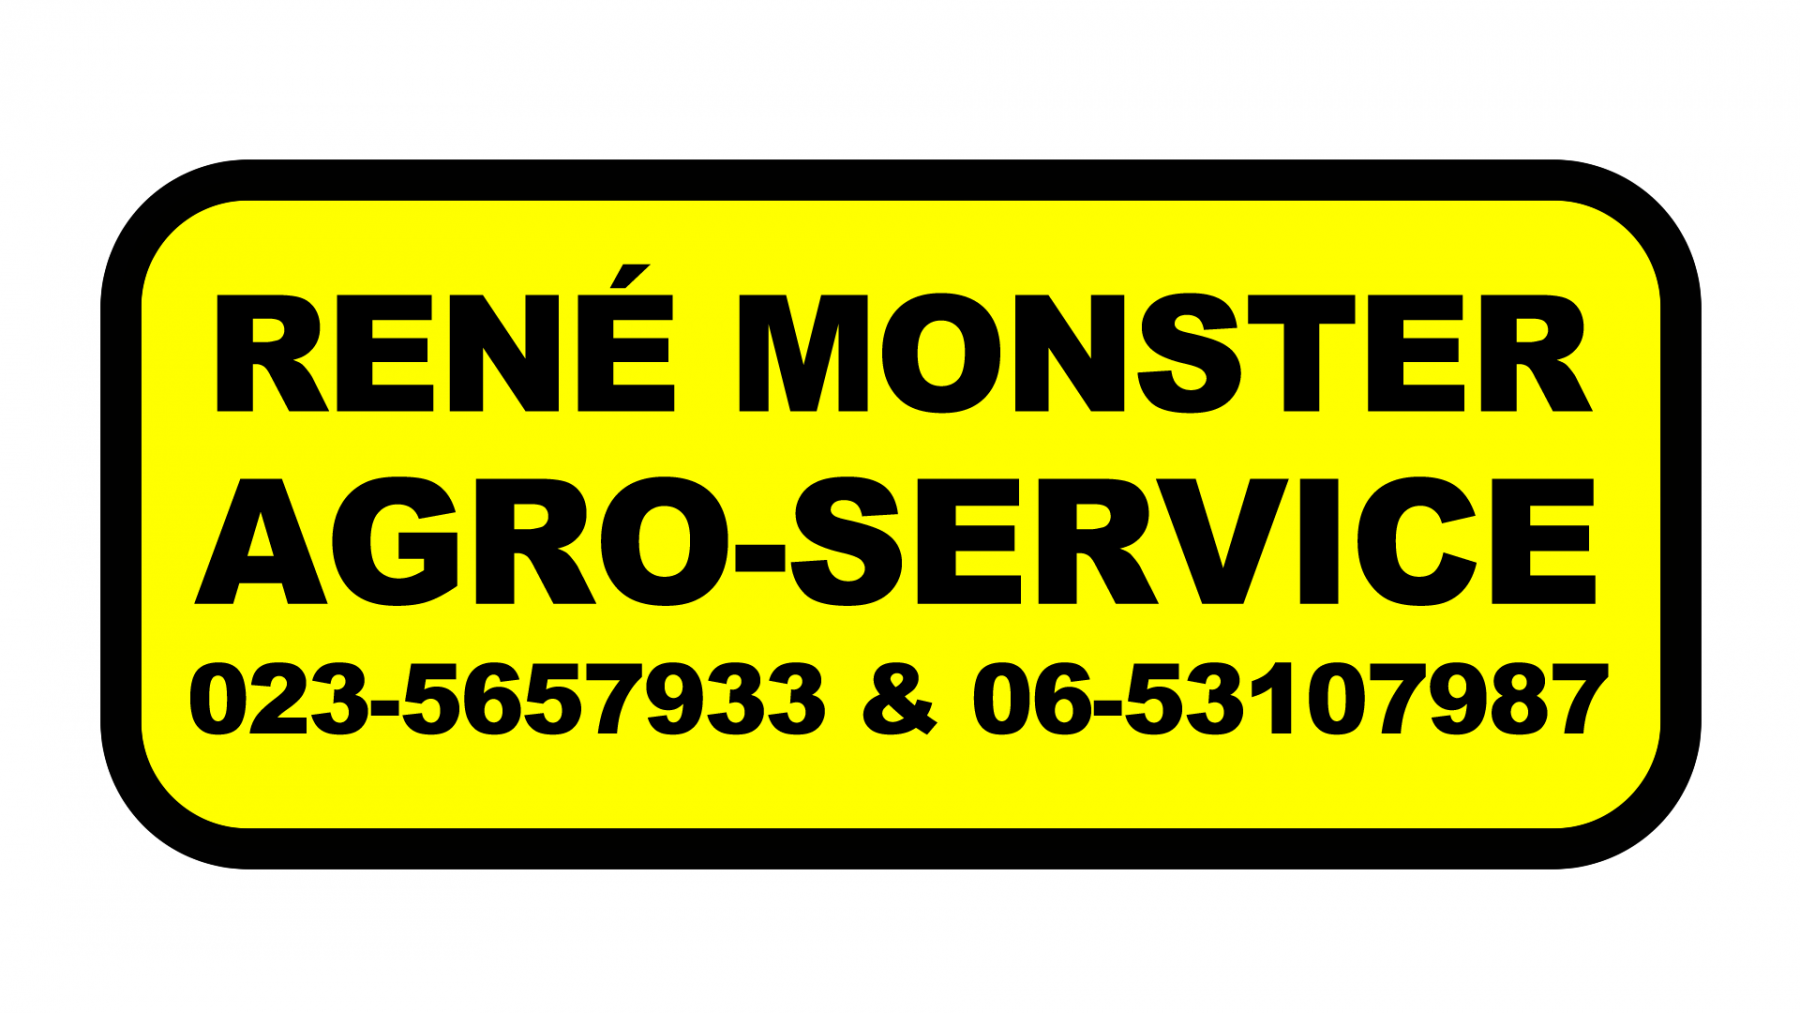 Rene-Monster-Agro.fw_